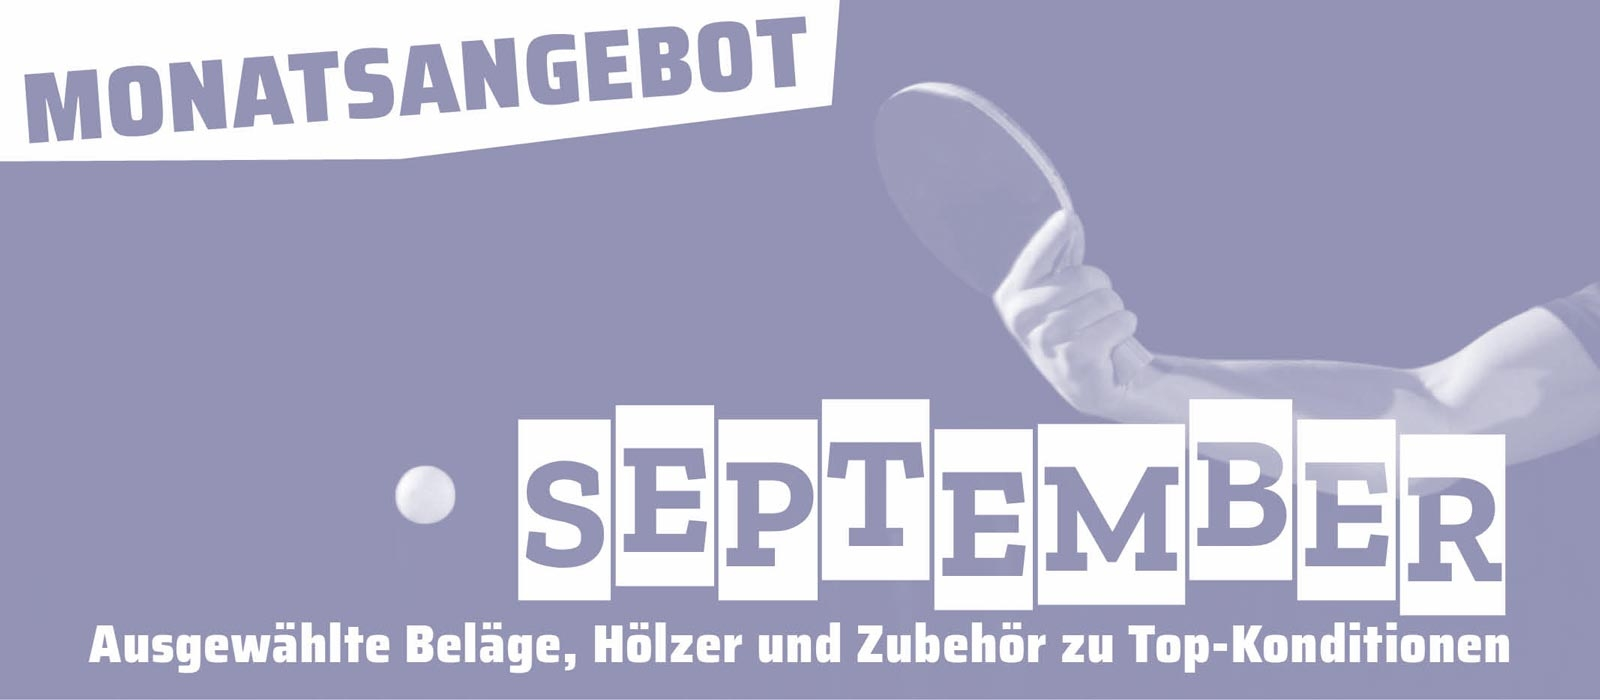 Monatsangebot September 2019